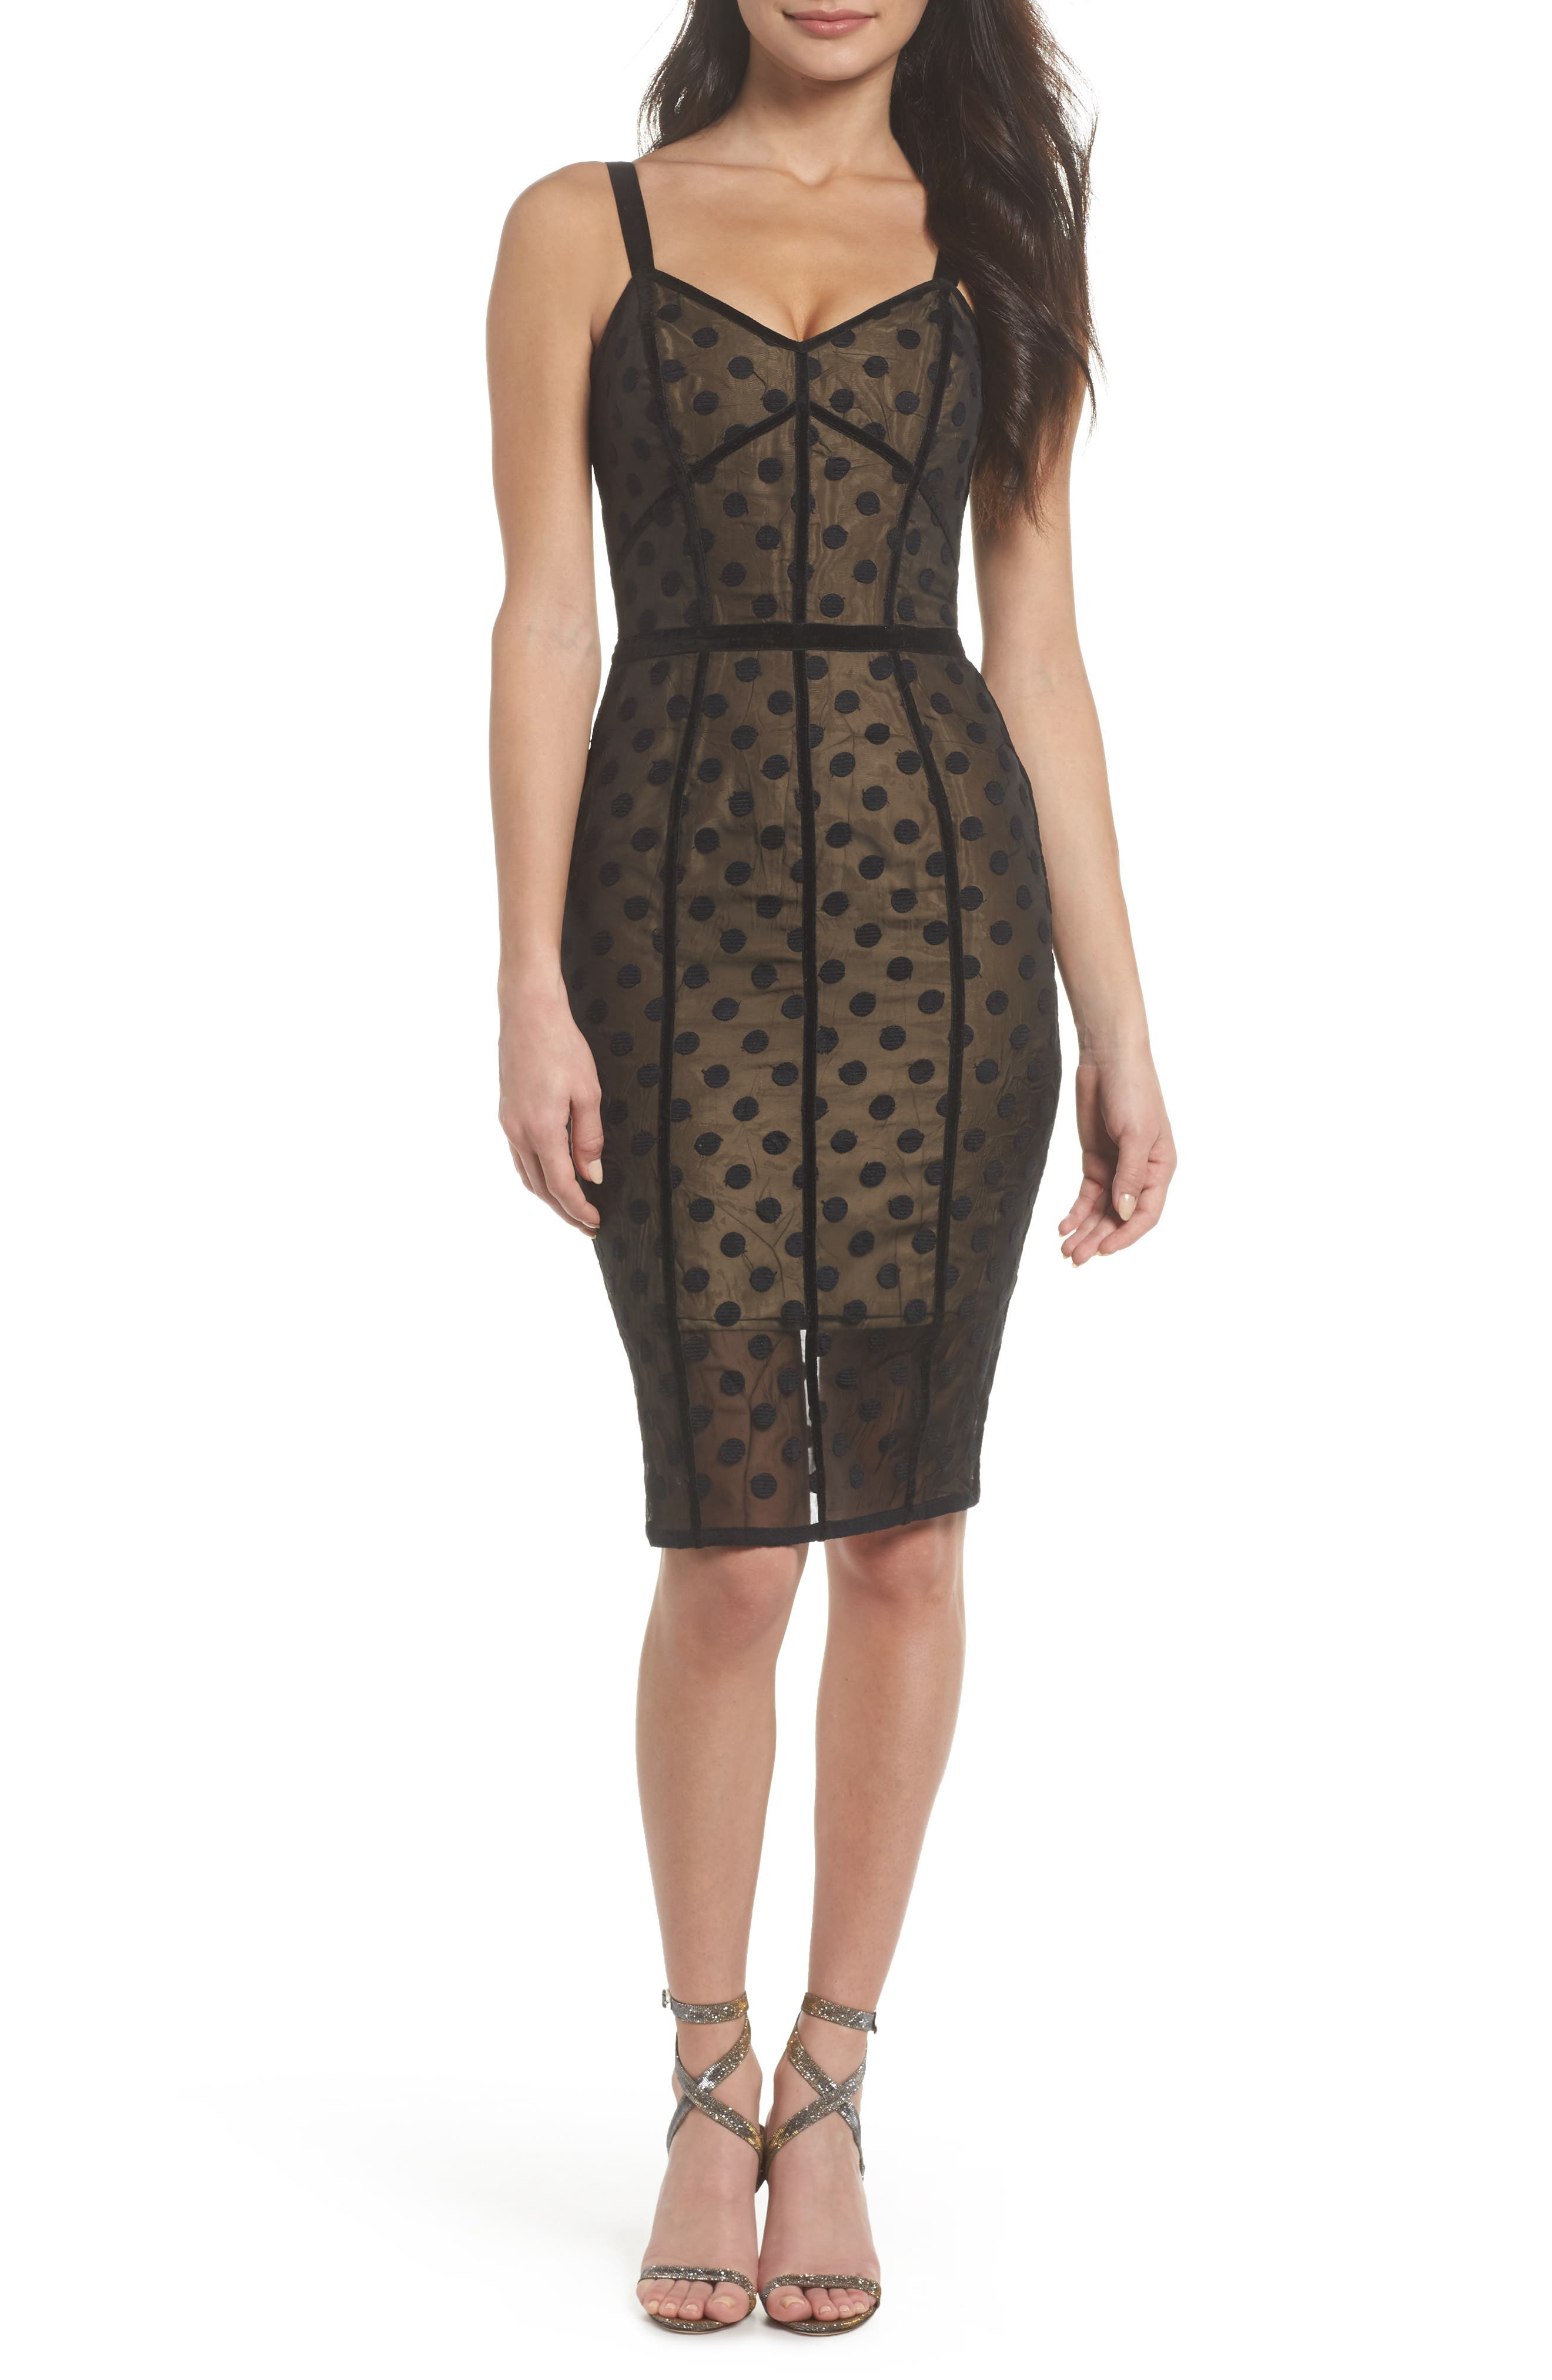 Isabella Noir Dot Embroidered Body-Con Dress,                         Main,                         color, Black/ Nude